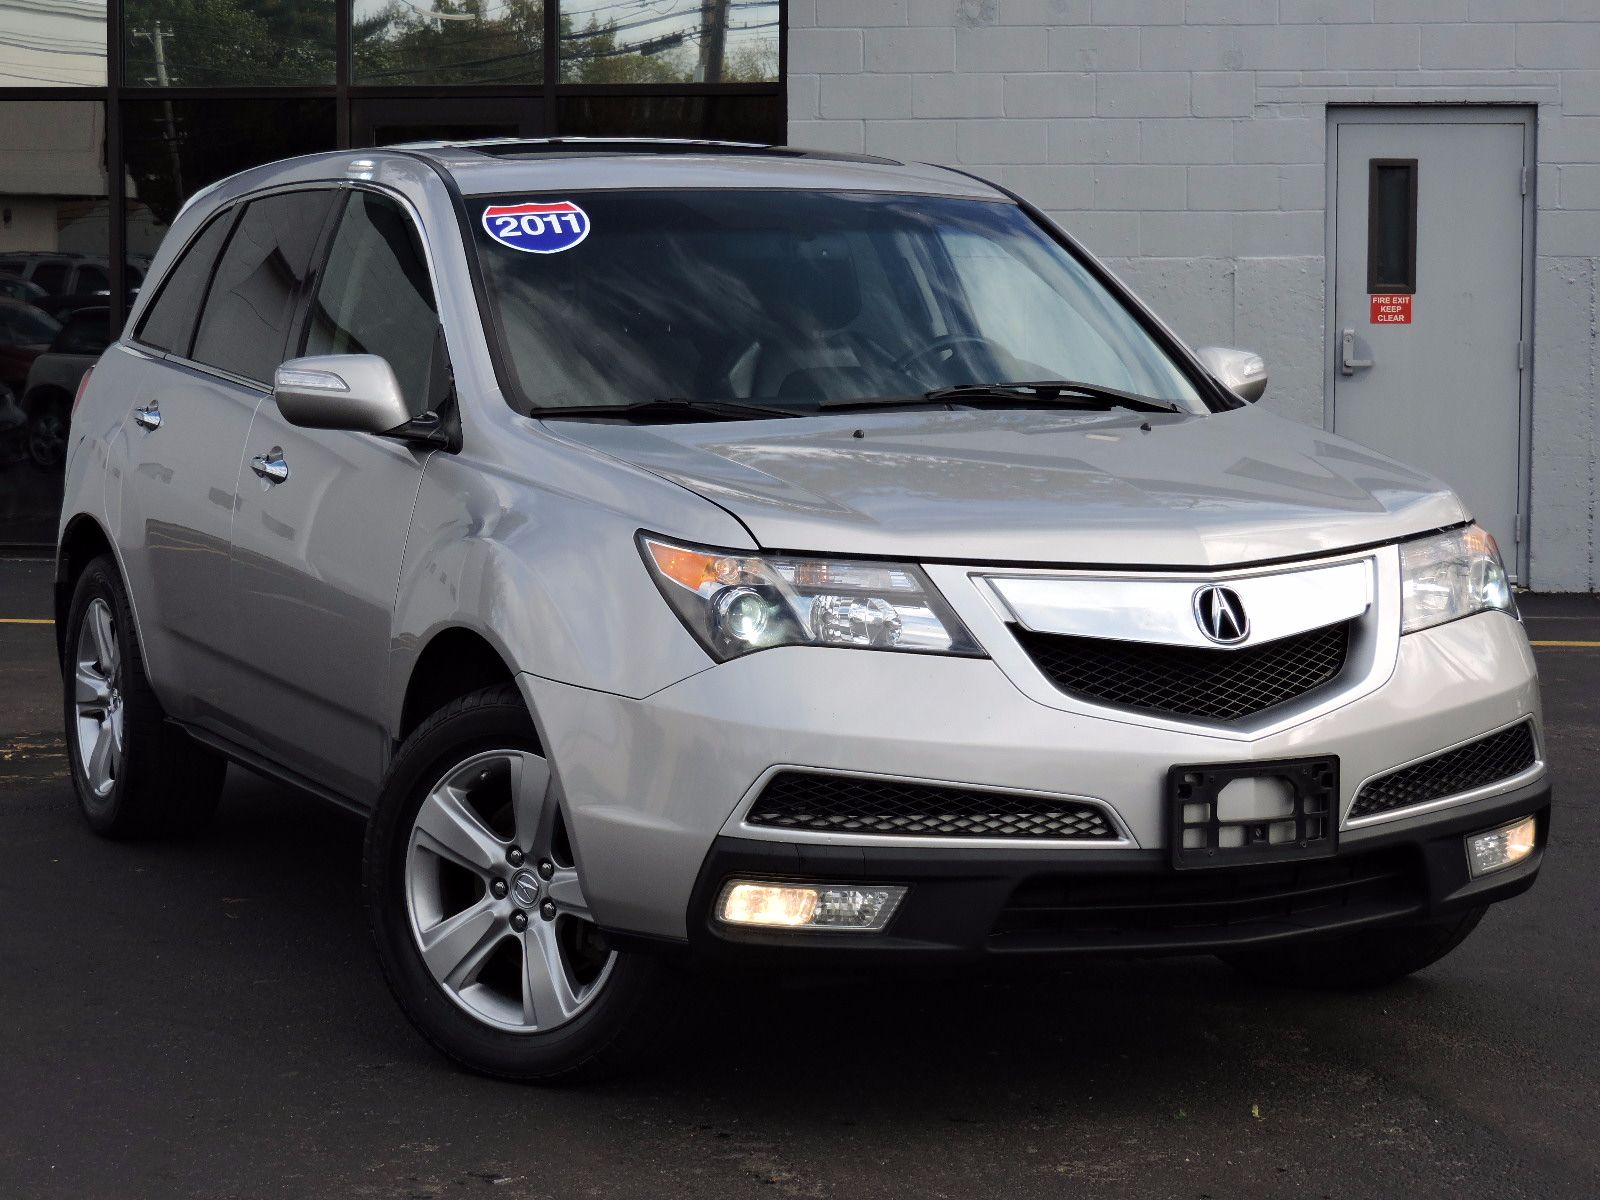 2011 Acura MDX - All Wheel Drive - Navigation - Technology Package